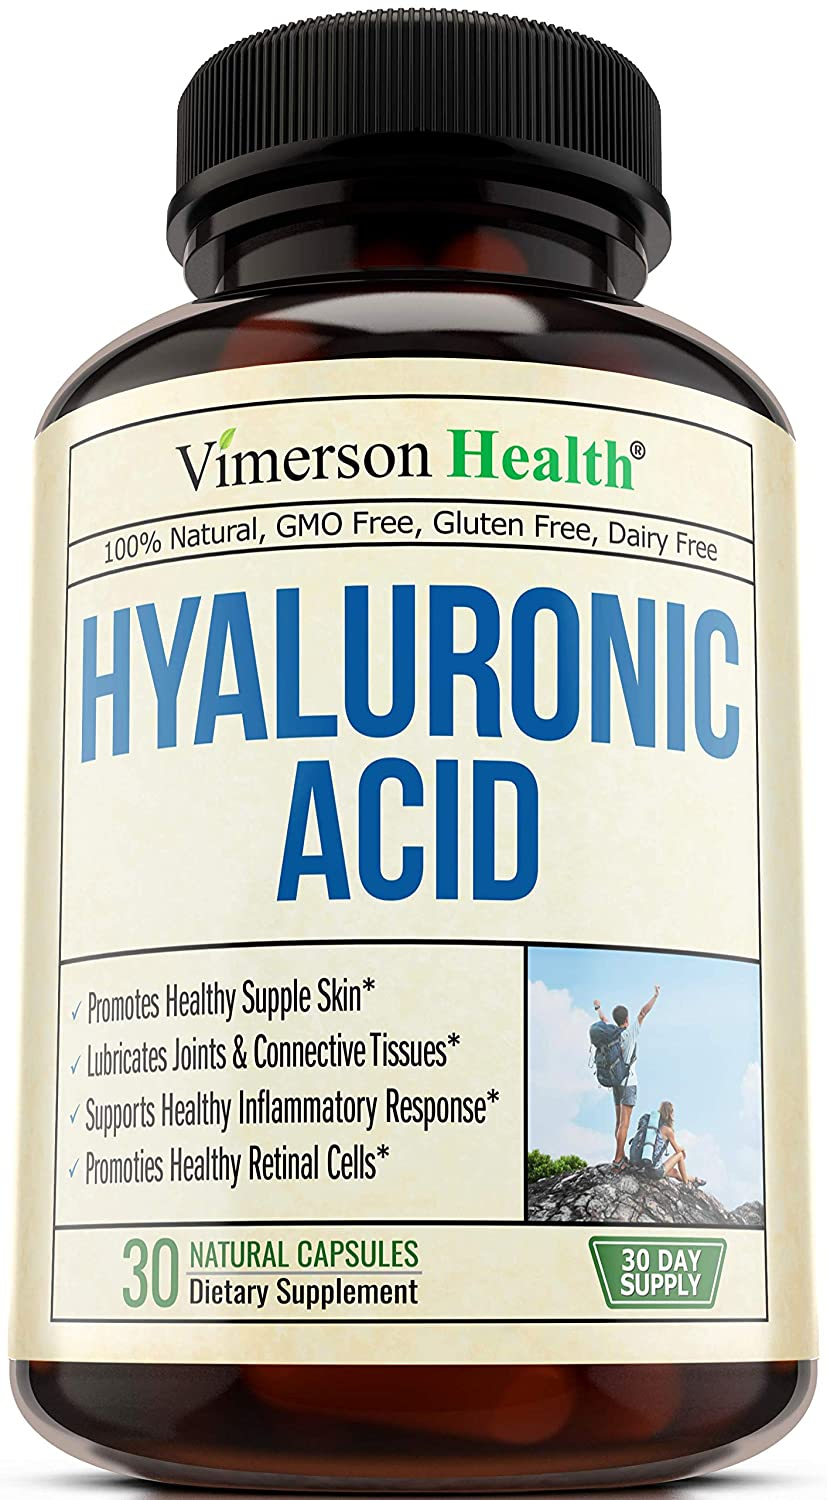 Hyaluronic Acid Capsules Natural Supplement - Powerfully Supports Skin Hydration & Joint Lubrication. Supports Healthy Connective Tissue and Cartilage - Promotes Healthy Skin, Hair, Nails & Bones